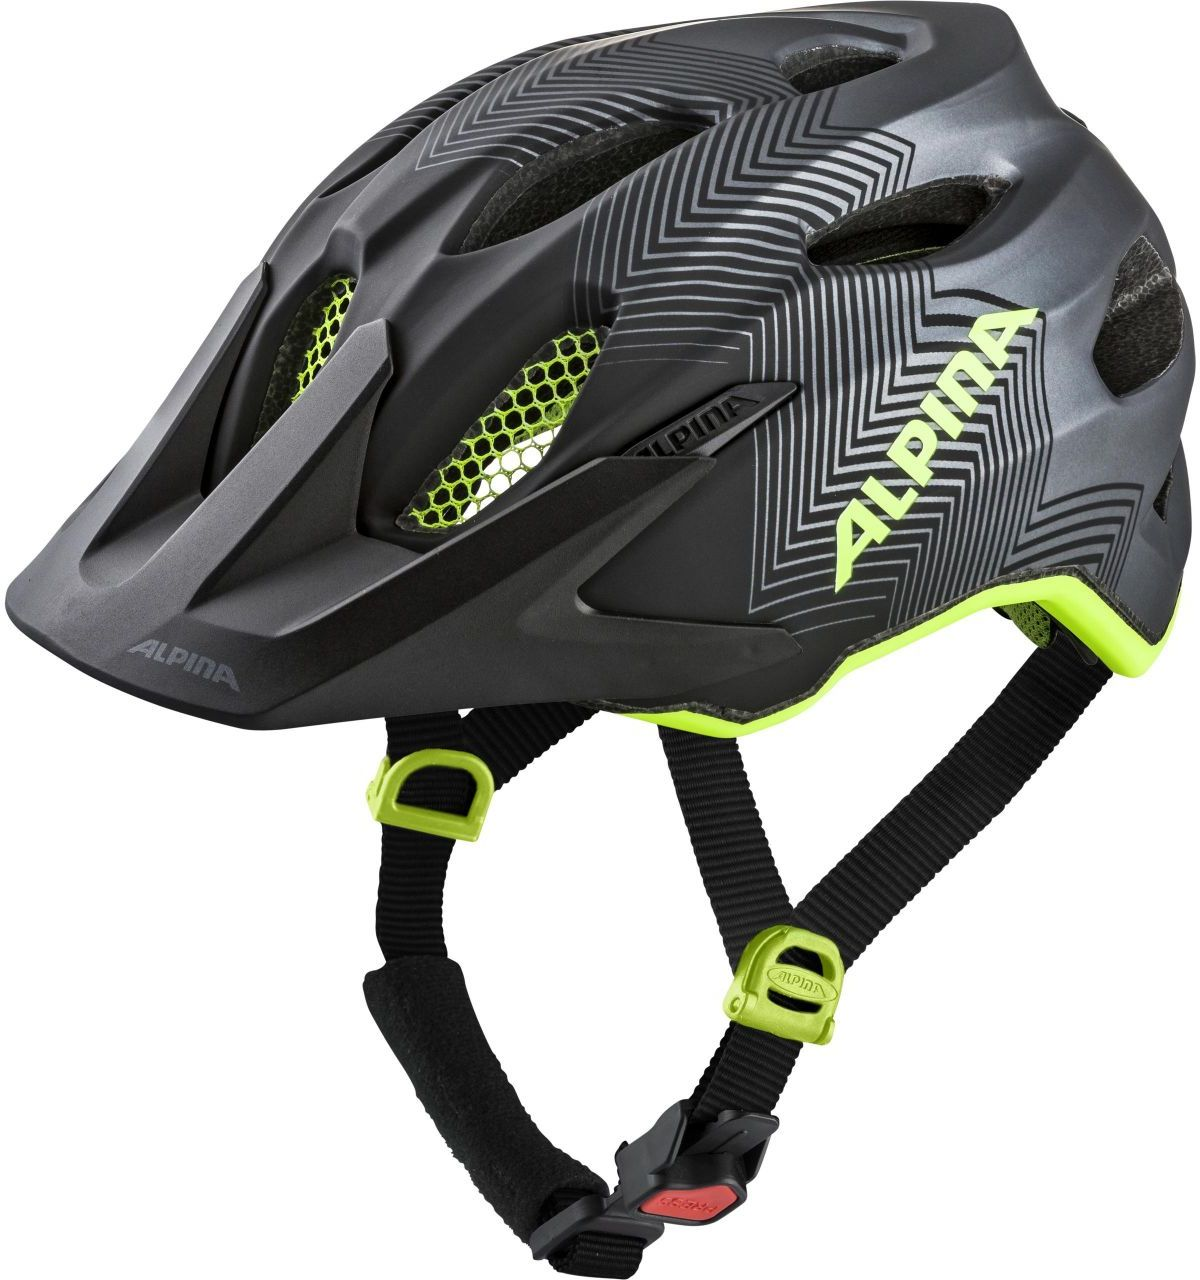 Alpina Carapax Jr. - black/neon/yellow 51-56